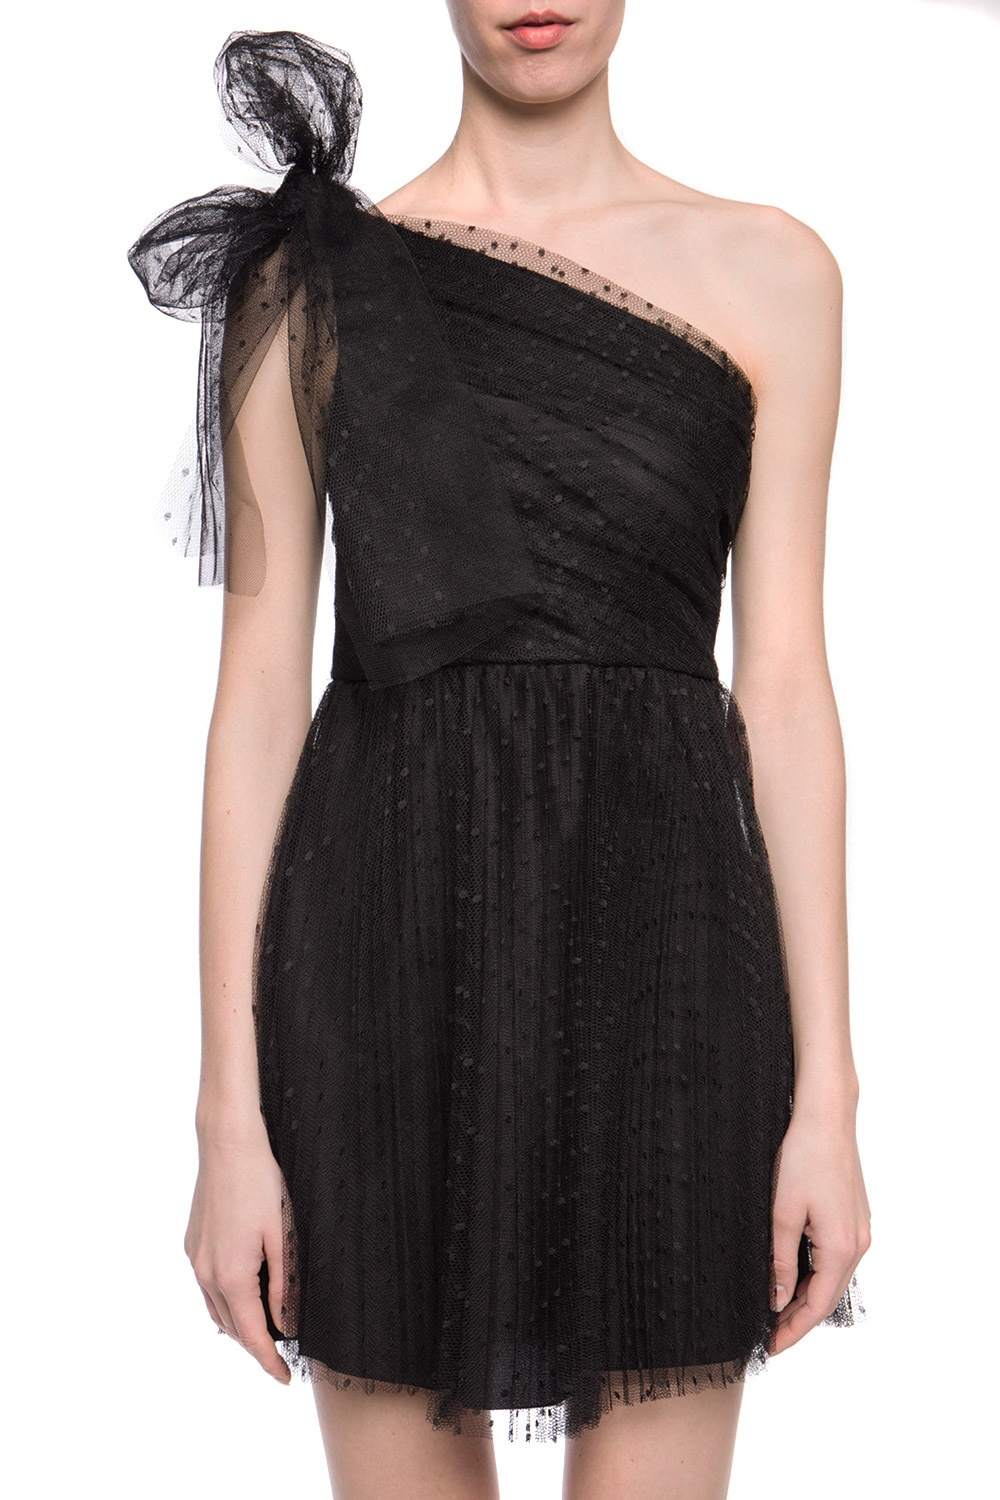 Red Valentino One-shoulder lace dress